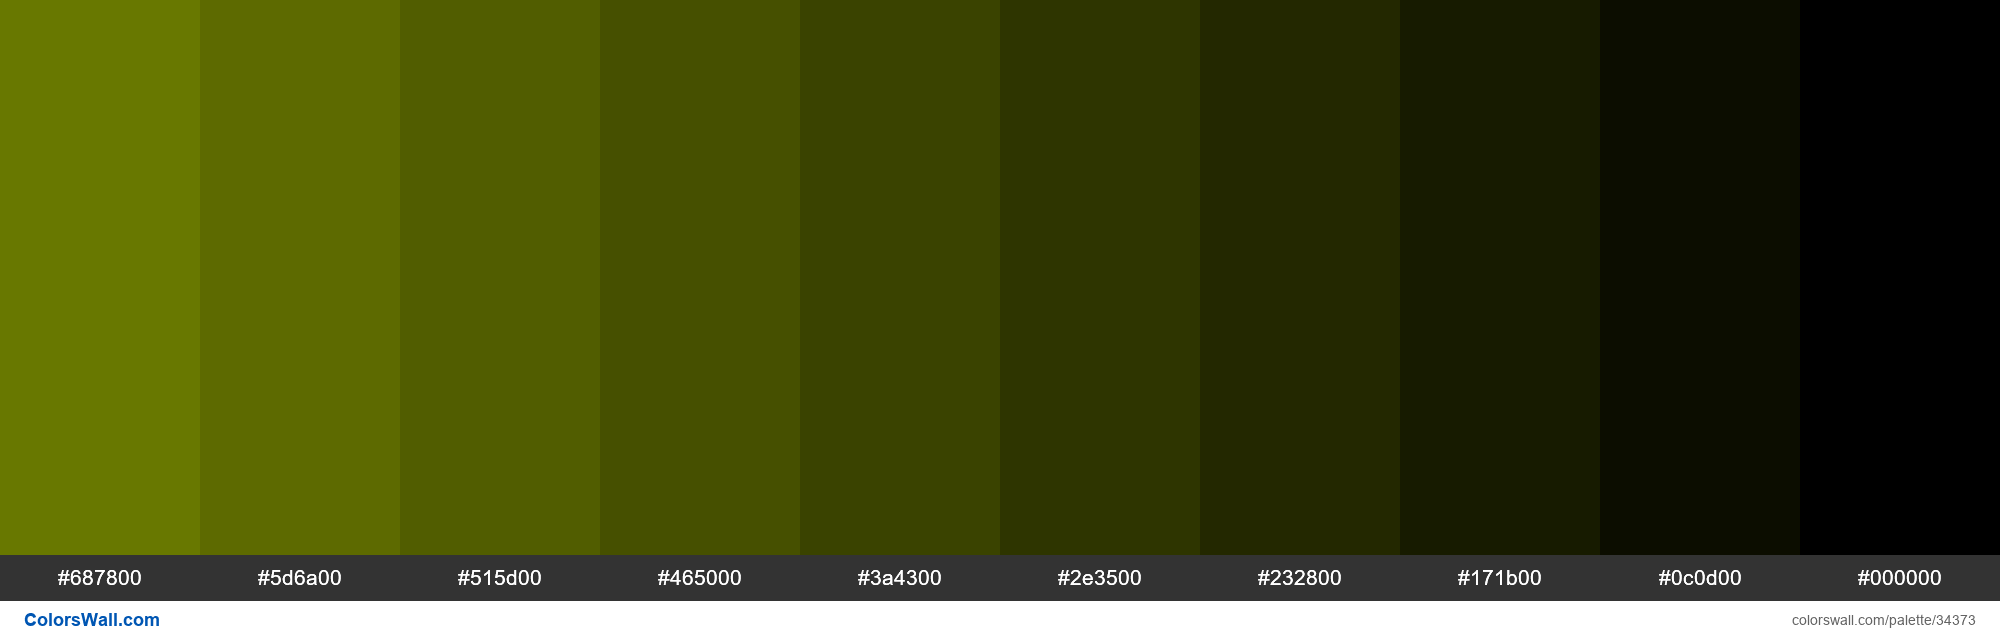 Shades XKCD Color swamp green #748500 hex - #34373